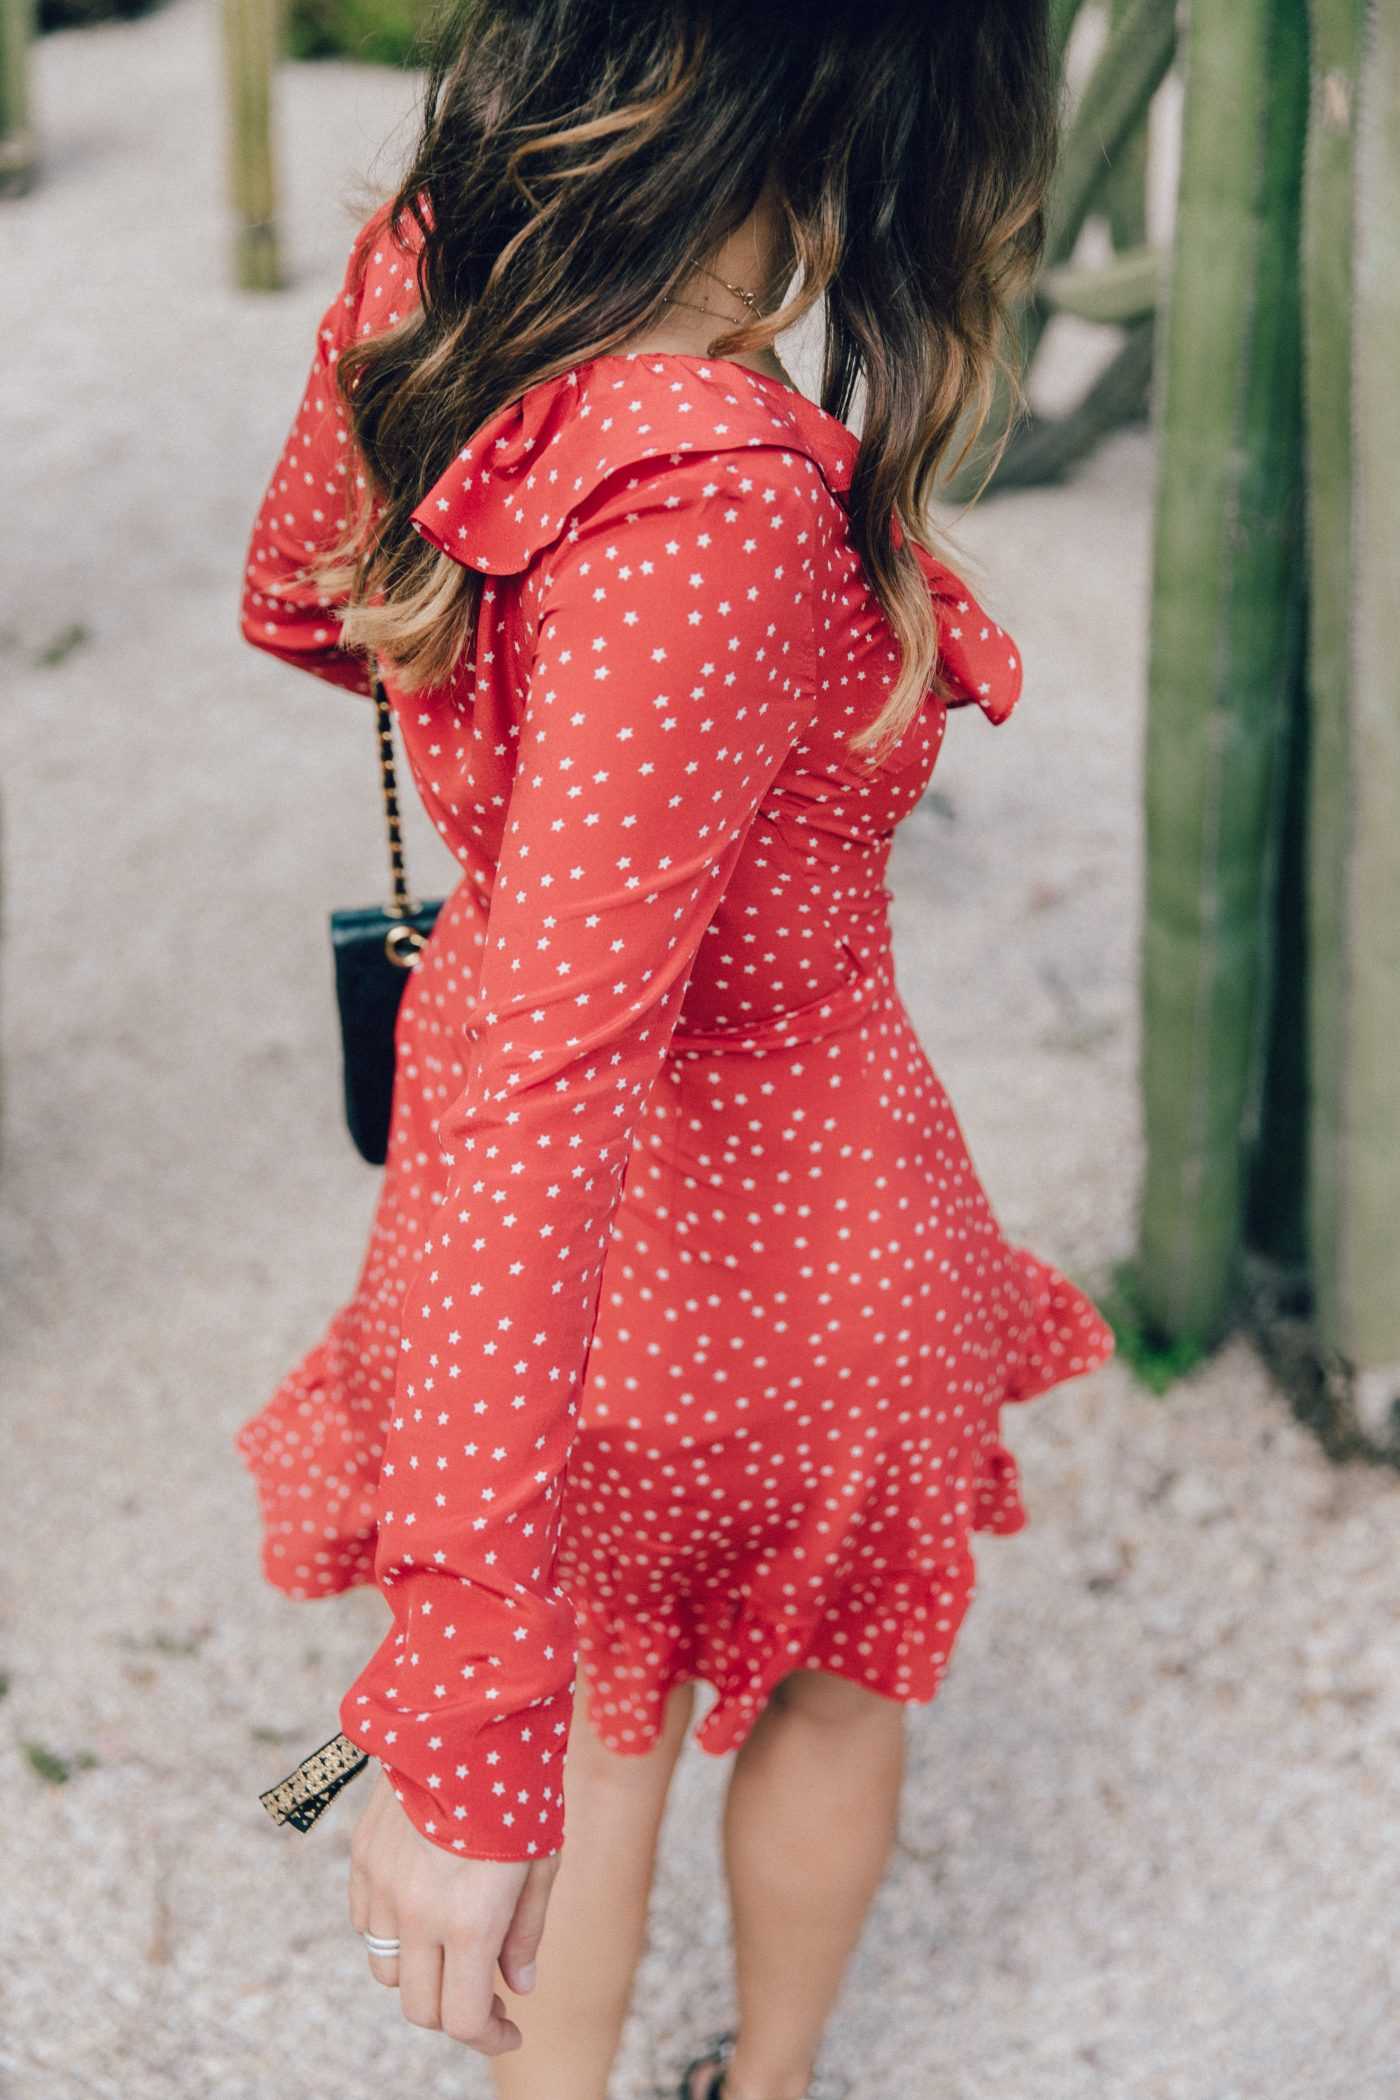 Realisation_Par_Dress-Star_Print-Red_Dress-Outfit-Catonier-Hat-Lack_Of_Color-Black_Sandals_Topshop-Barcelona-Collage_Vintage-Mossen_Gardens-67